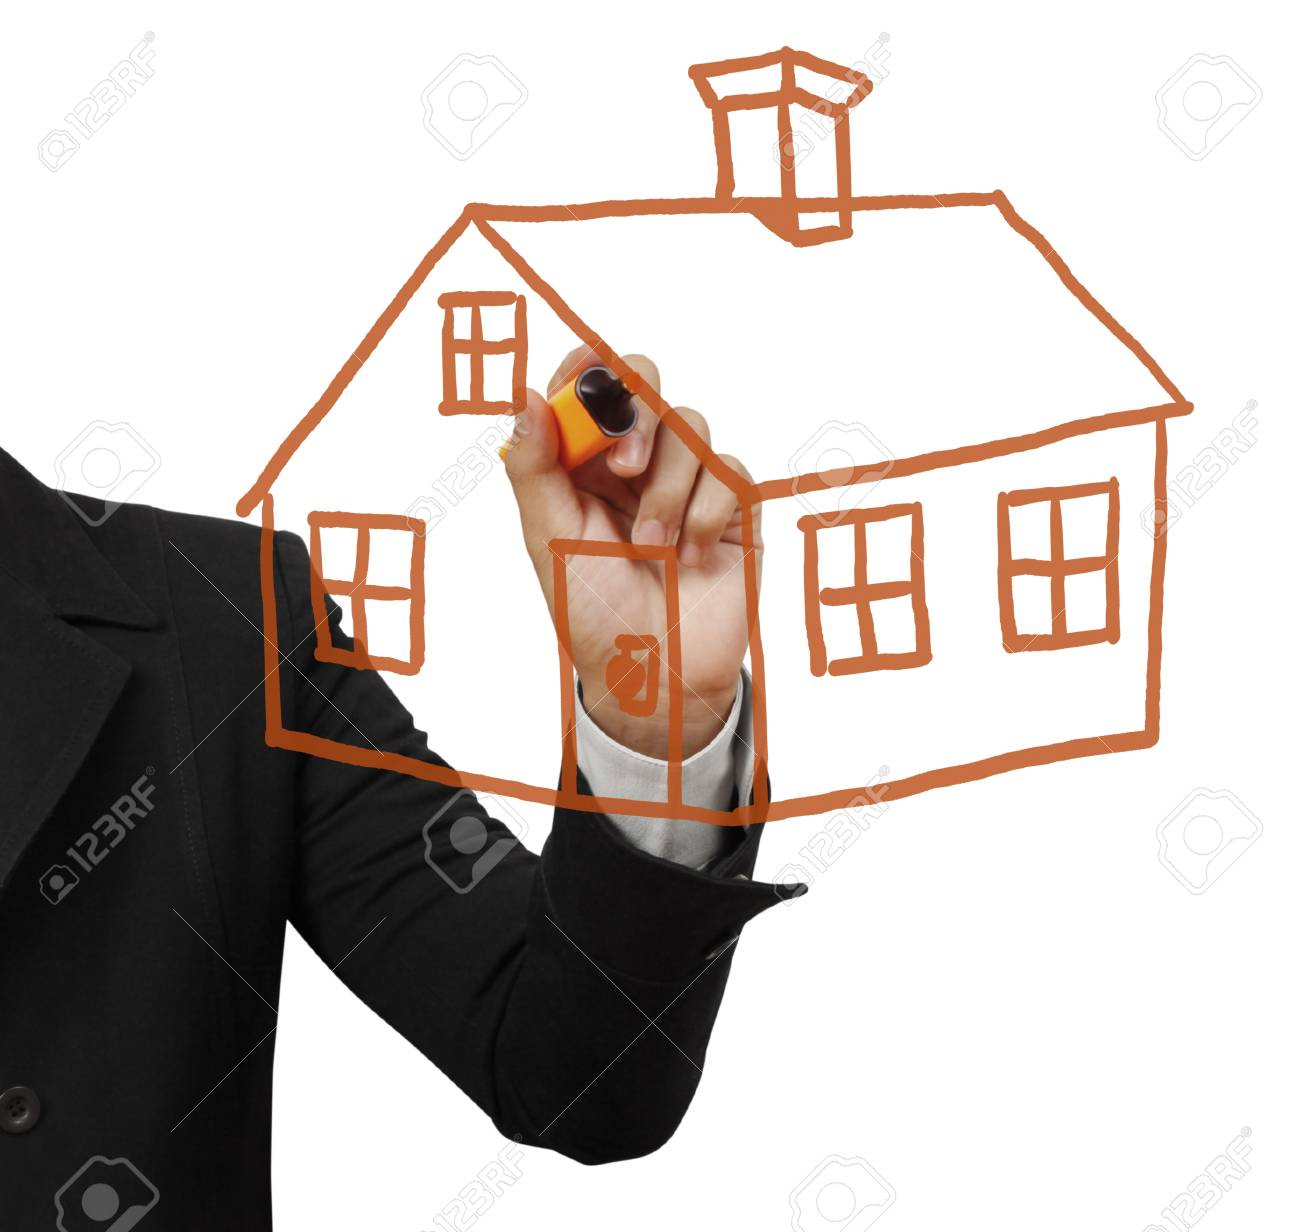 Draw a house with a pen Stock Photo - 9725961